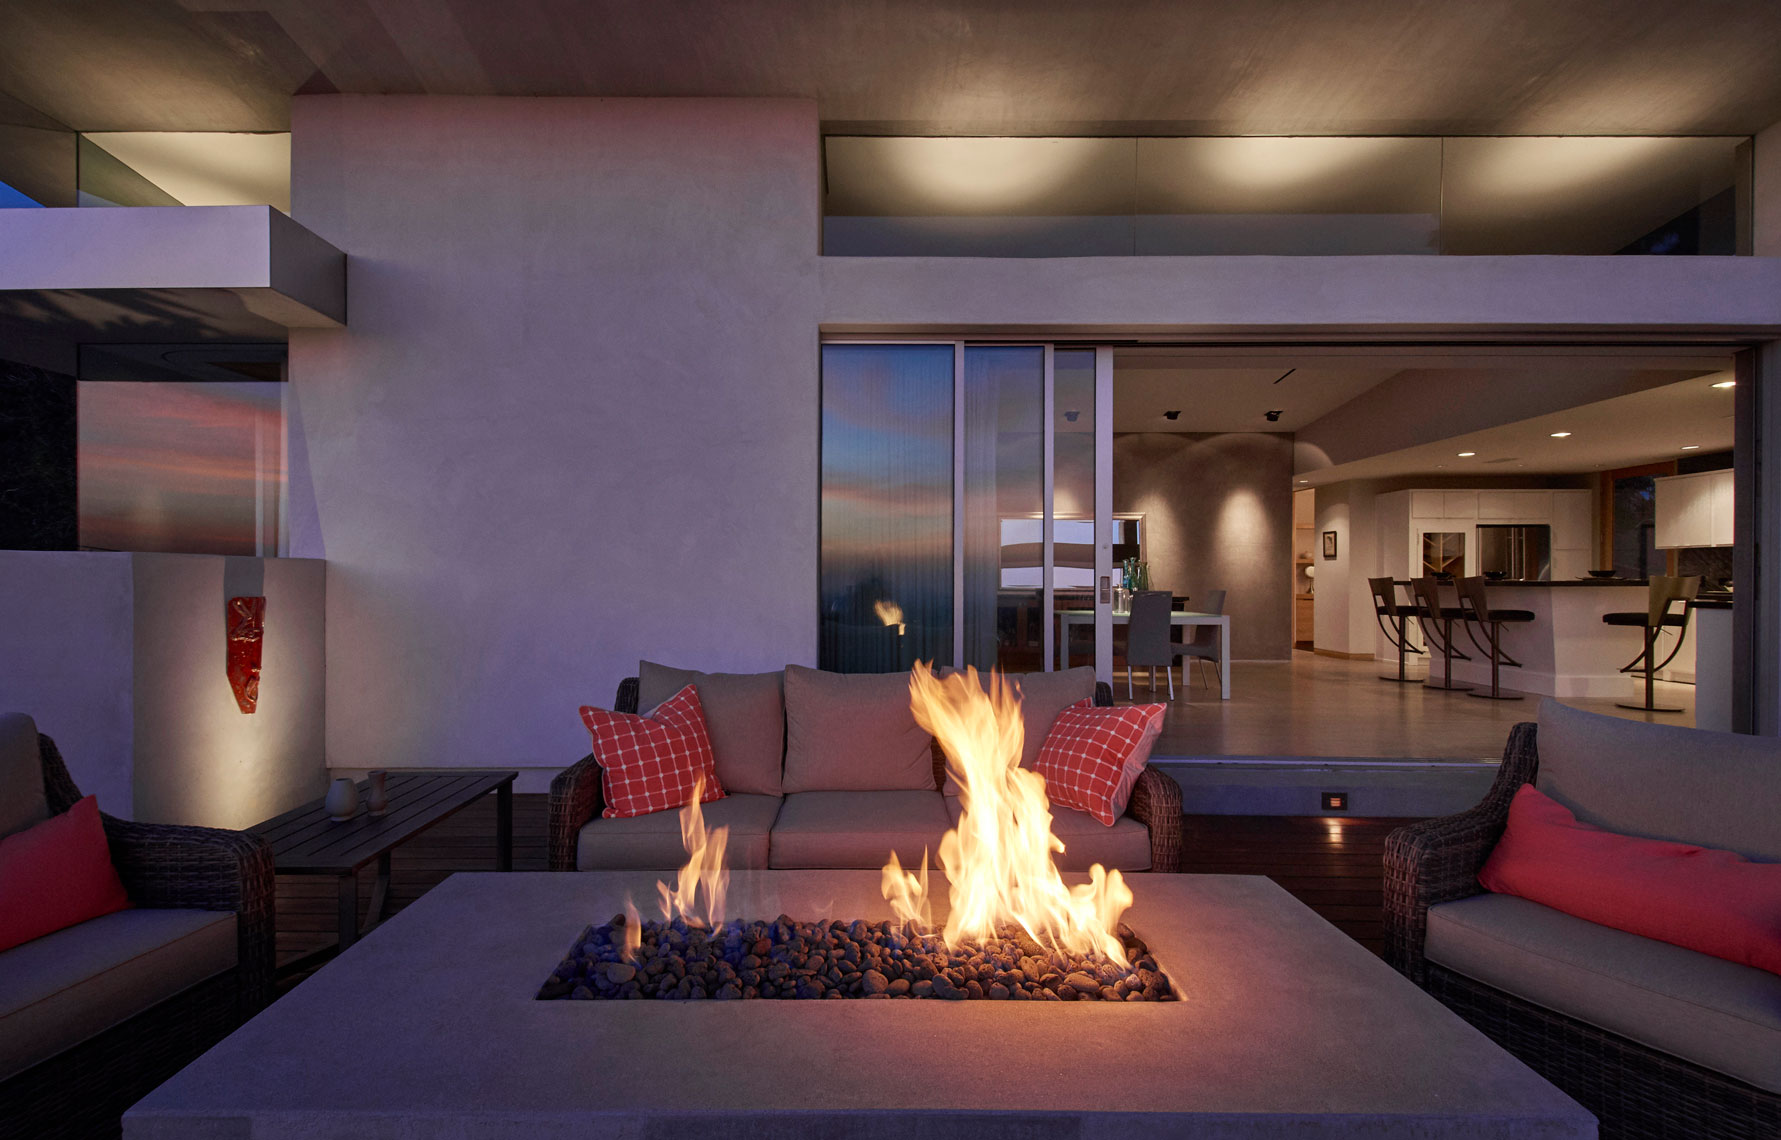 Outdoor-fireplace-with-view-of-contemporary-home-interior-in-background-by-top-Los-Angeles-architecture photographer